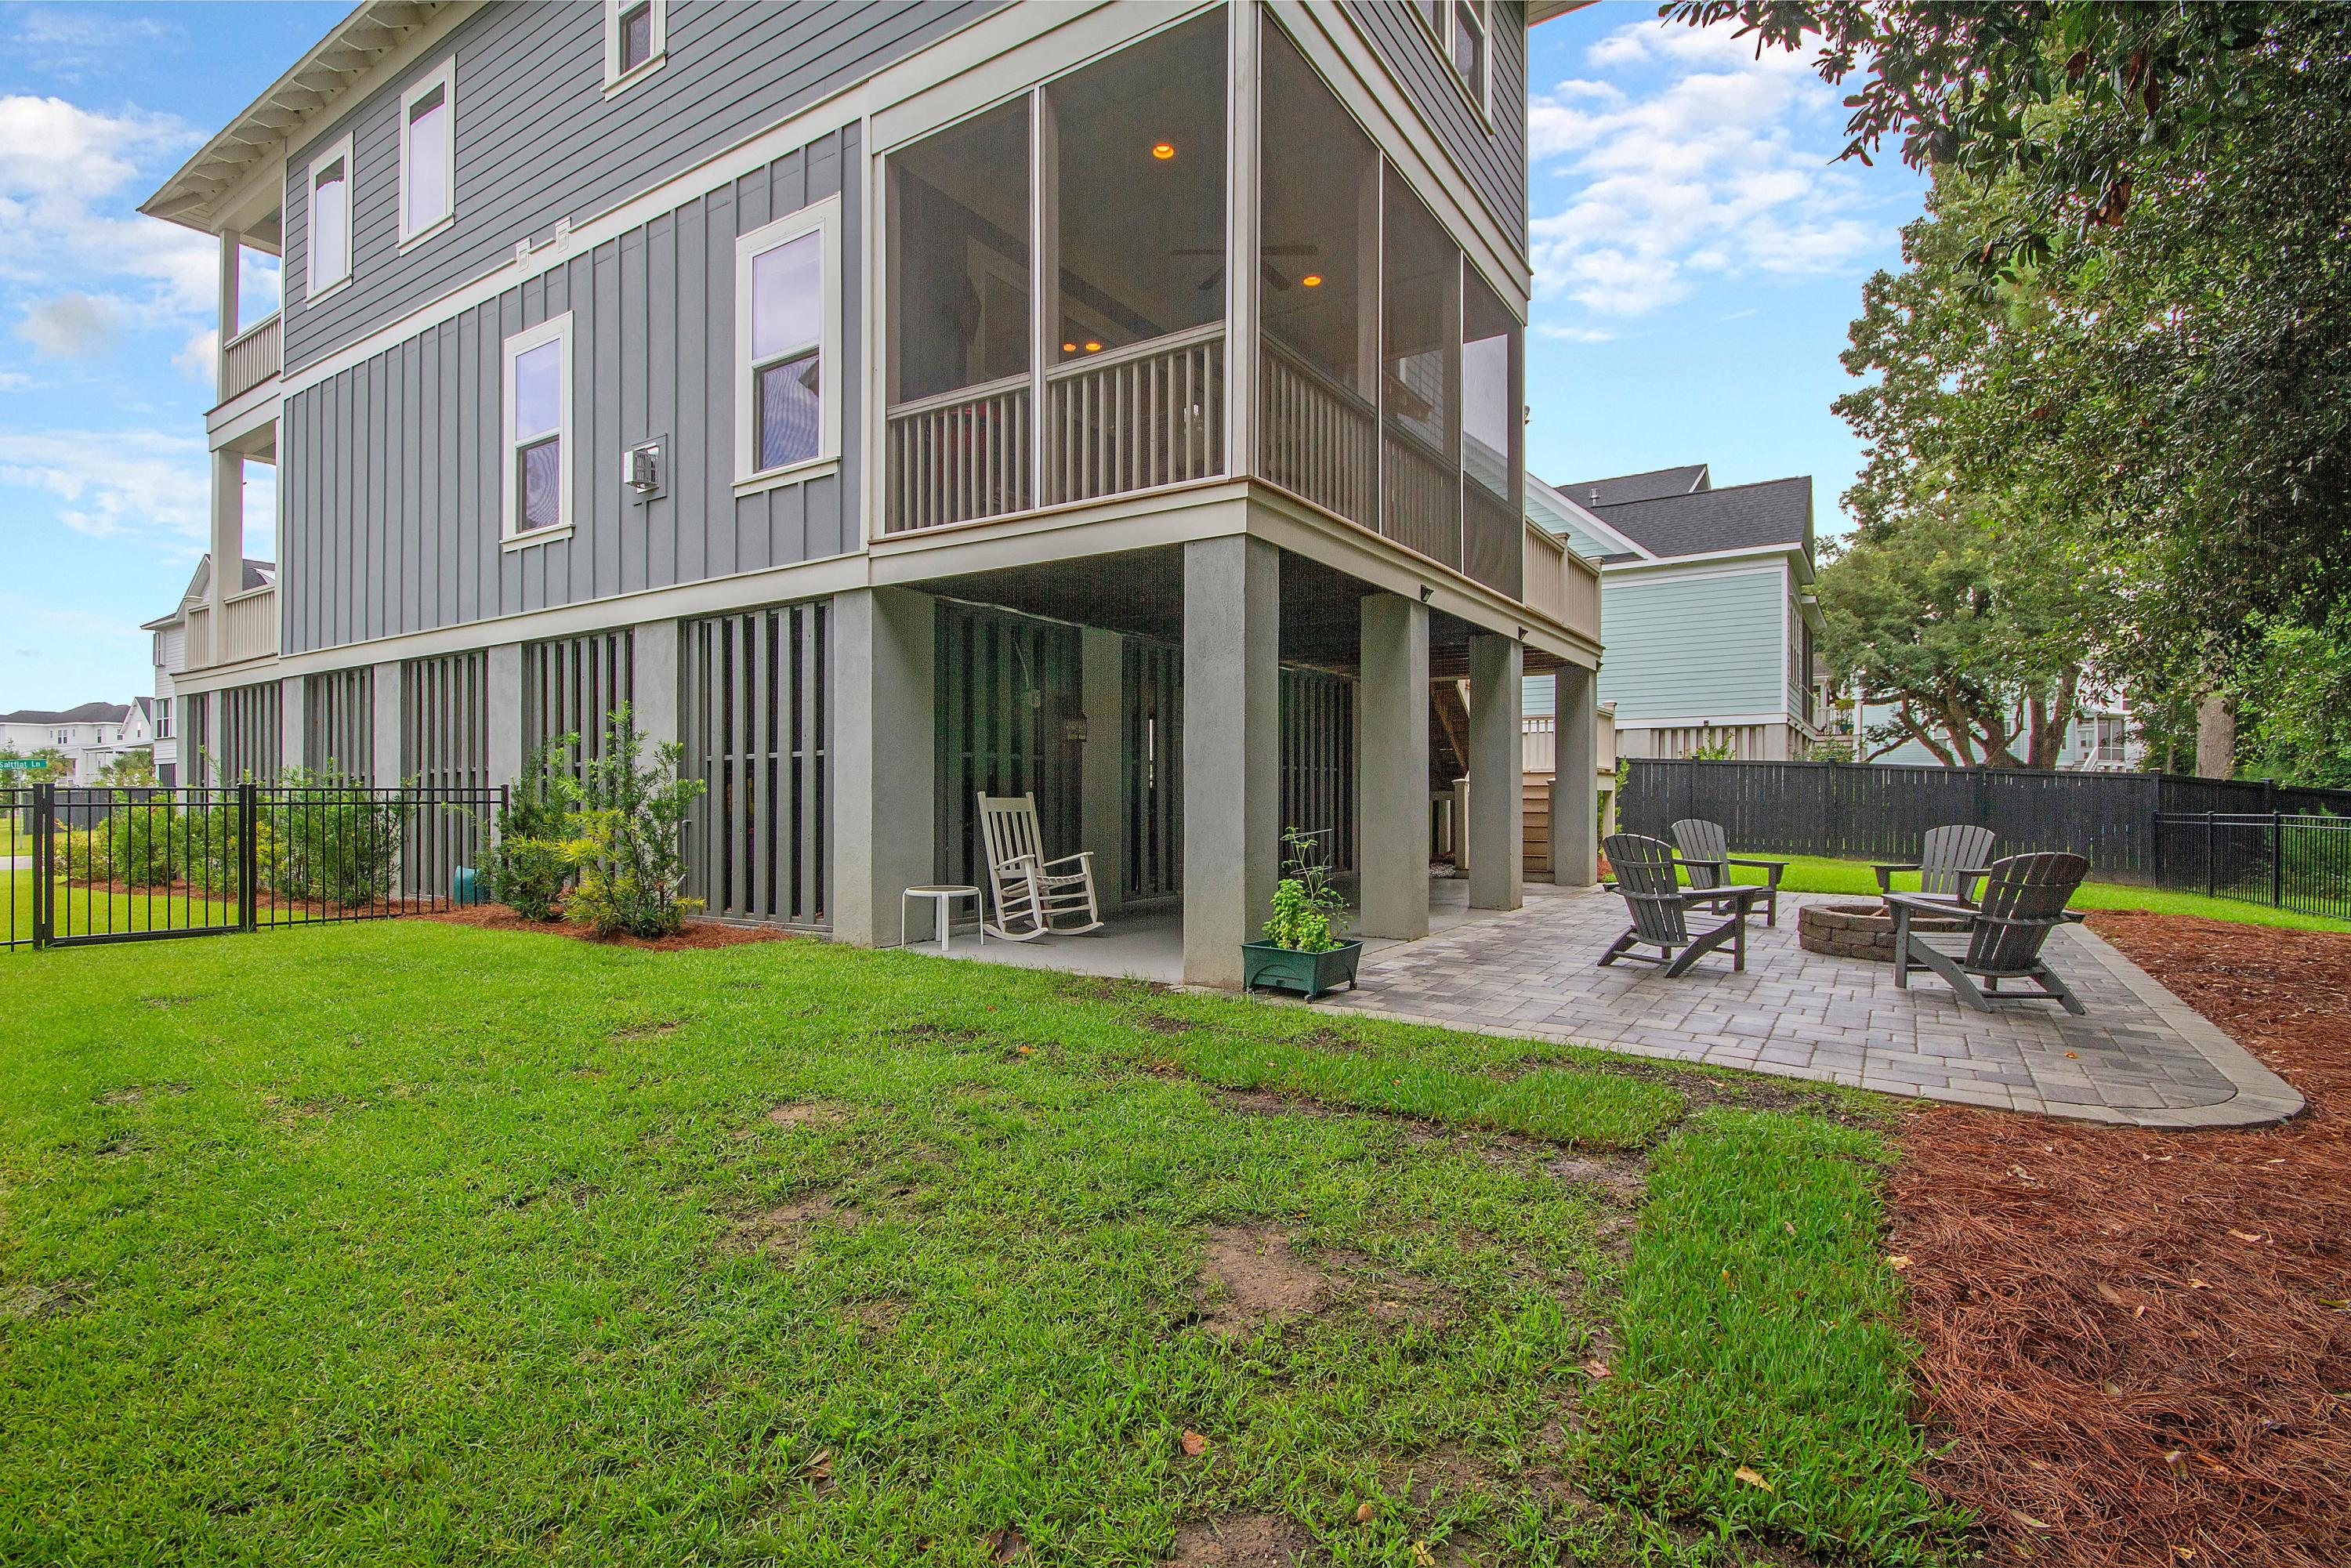 Stratton by the Sound Homes For Sale - 3542 Saltflat, Mount Pleasant, SC - 41